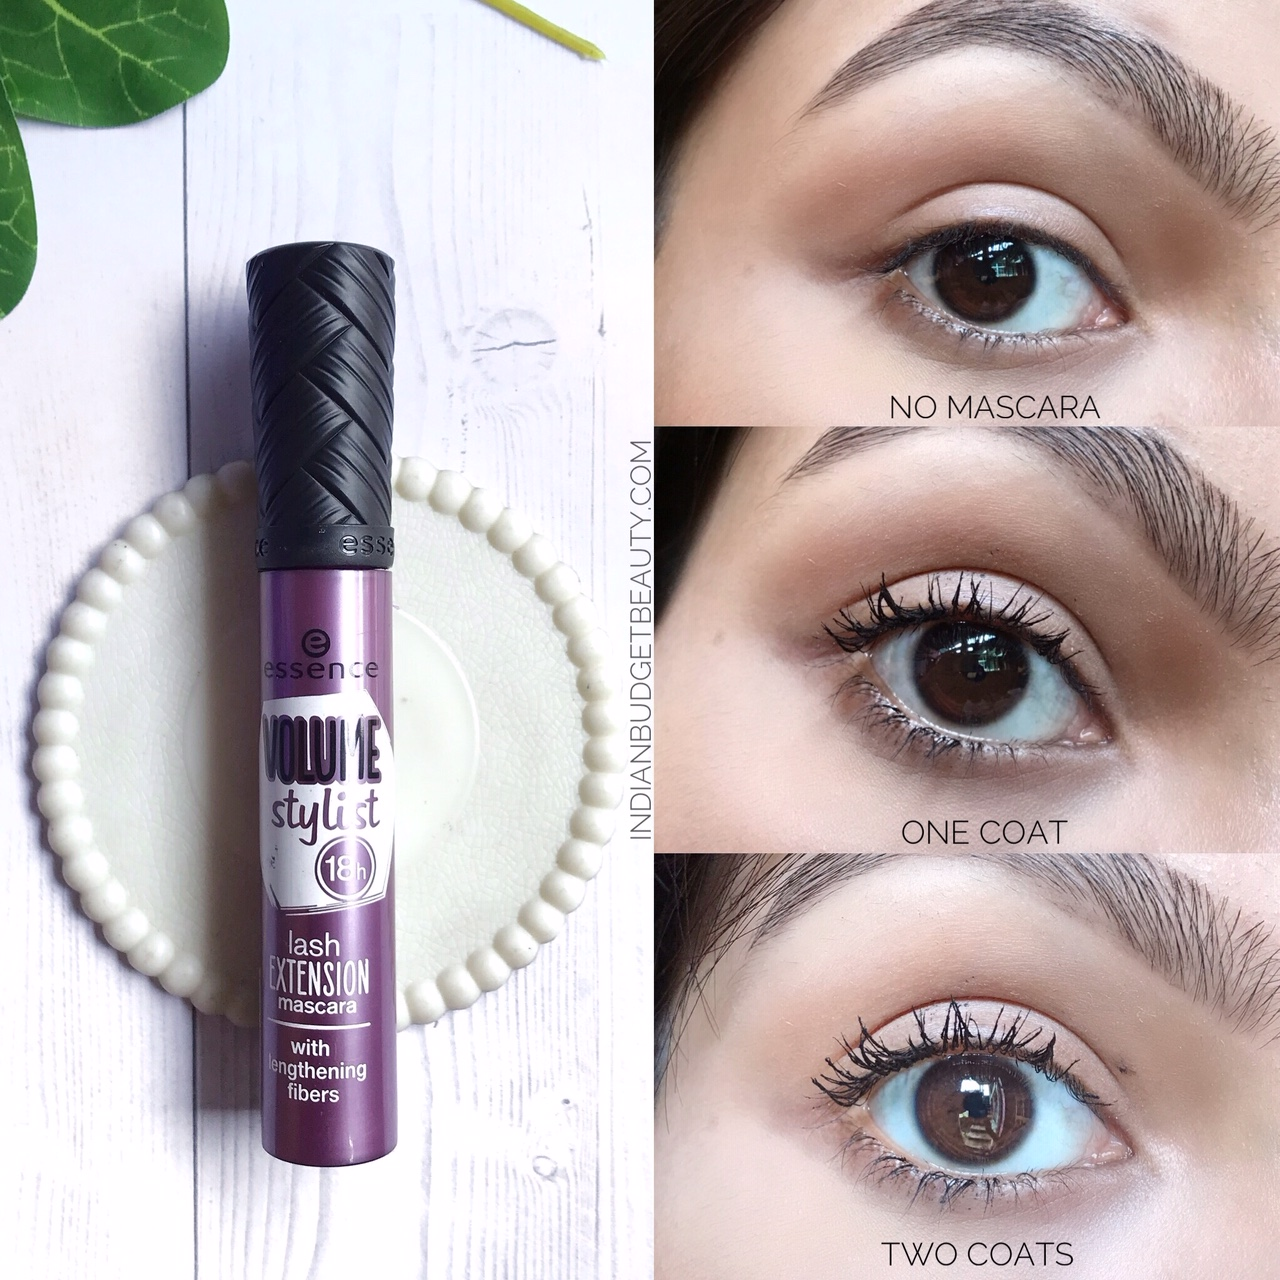 Blog Mascara Items Rs Cien Beauty My Review 34jAc5RqL